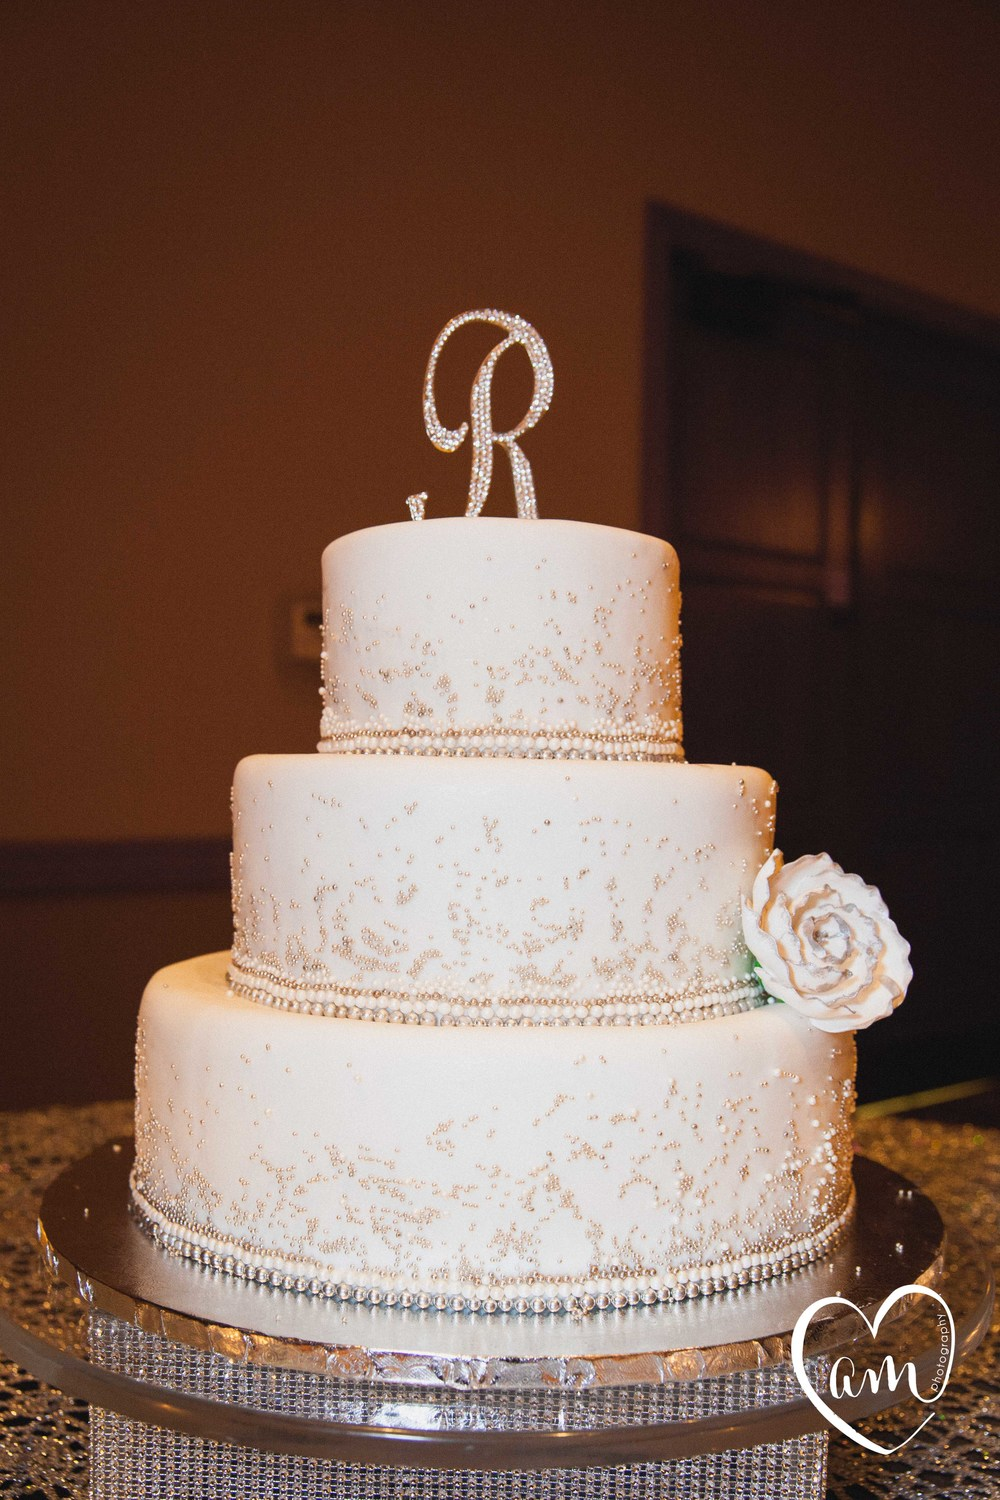 Wedding Cake Photo by Amanda Mejias Photography: Destination Wedding Photographer.